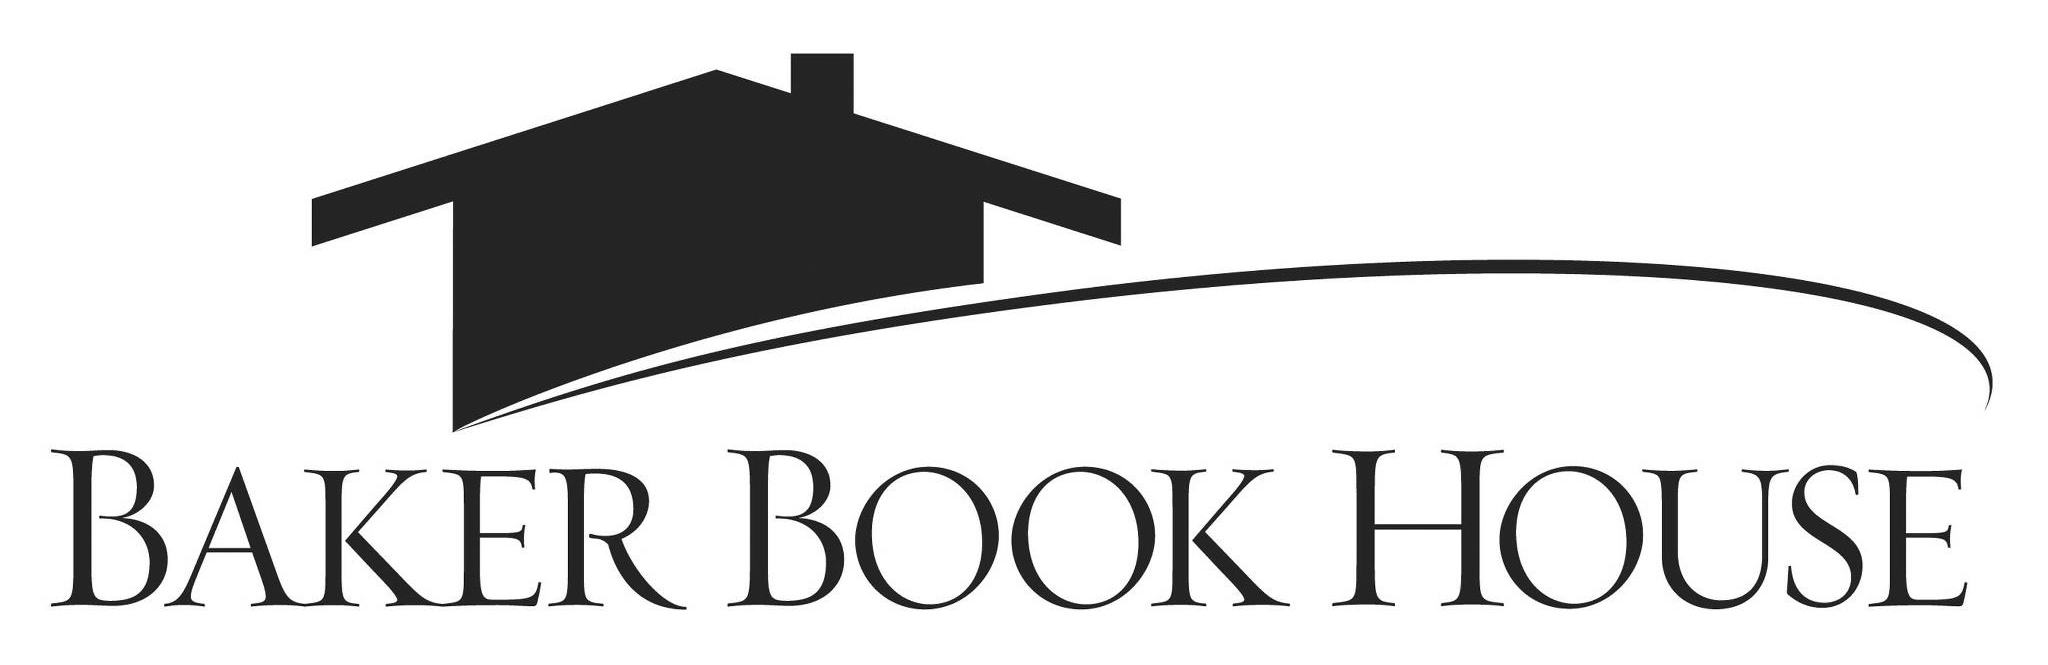 Baker clipart logo. The new improved book